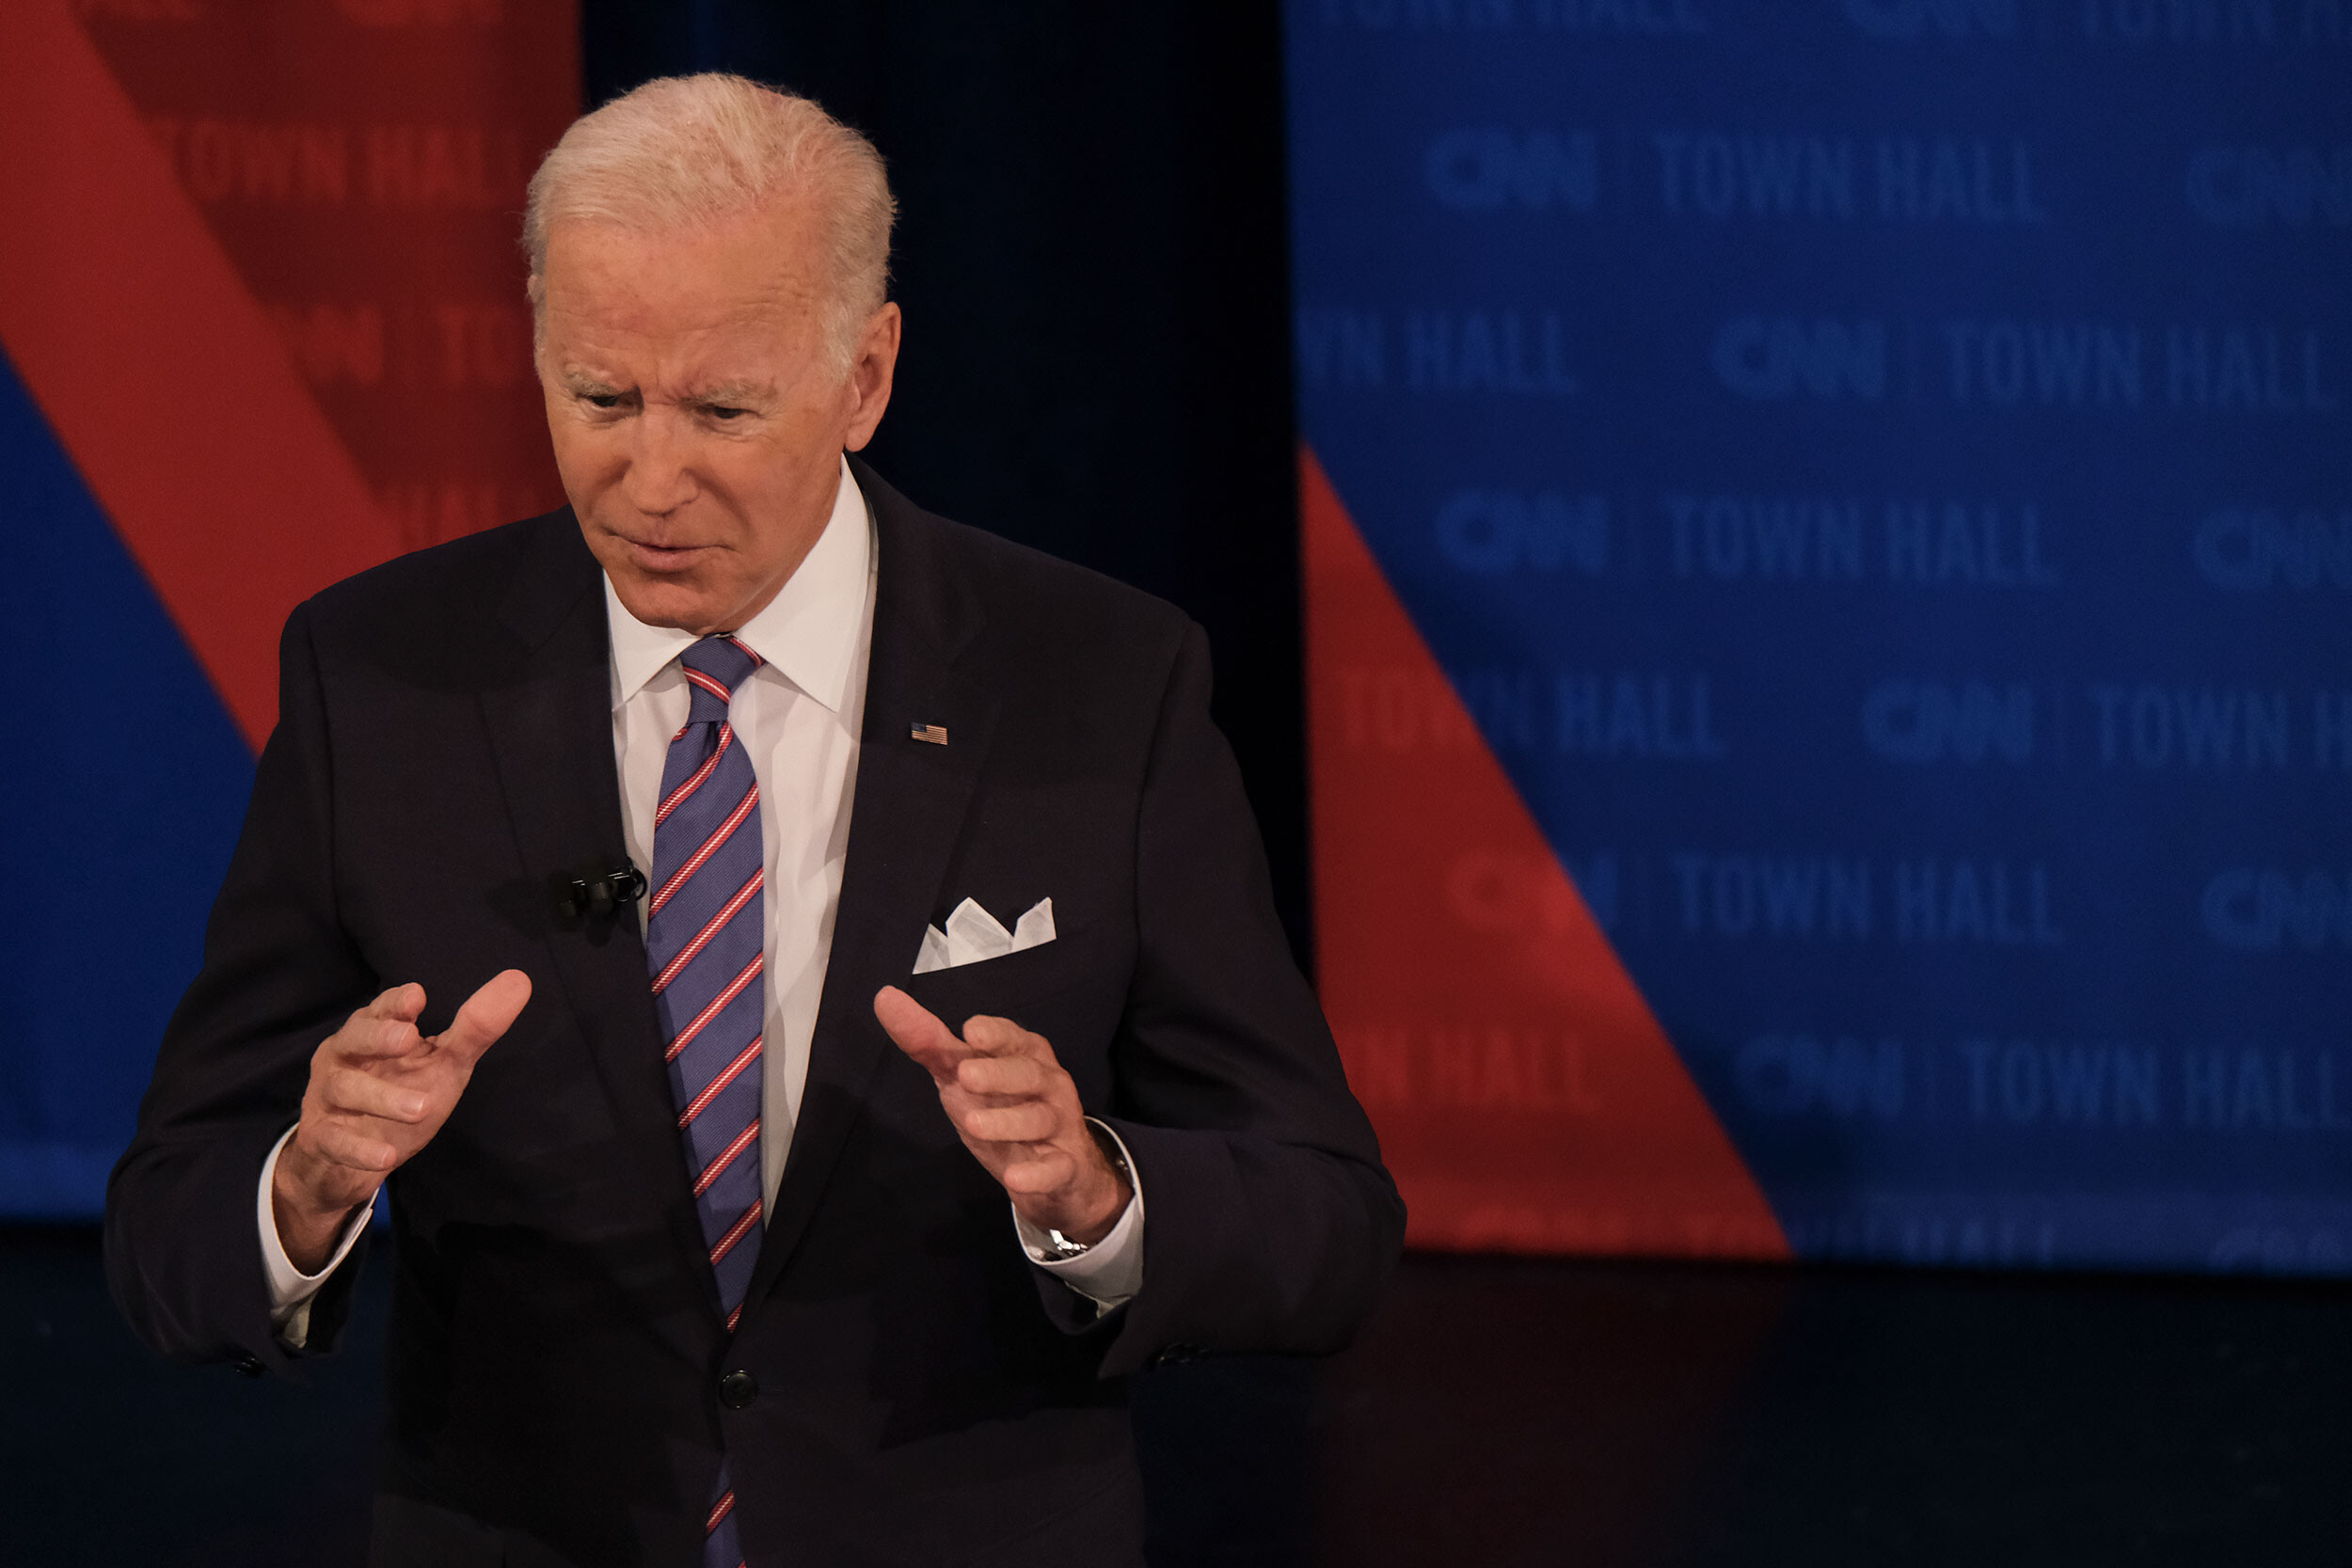 Biden vows to protect Taiwan in event of Chinese attack